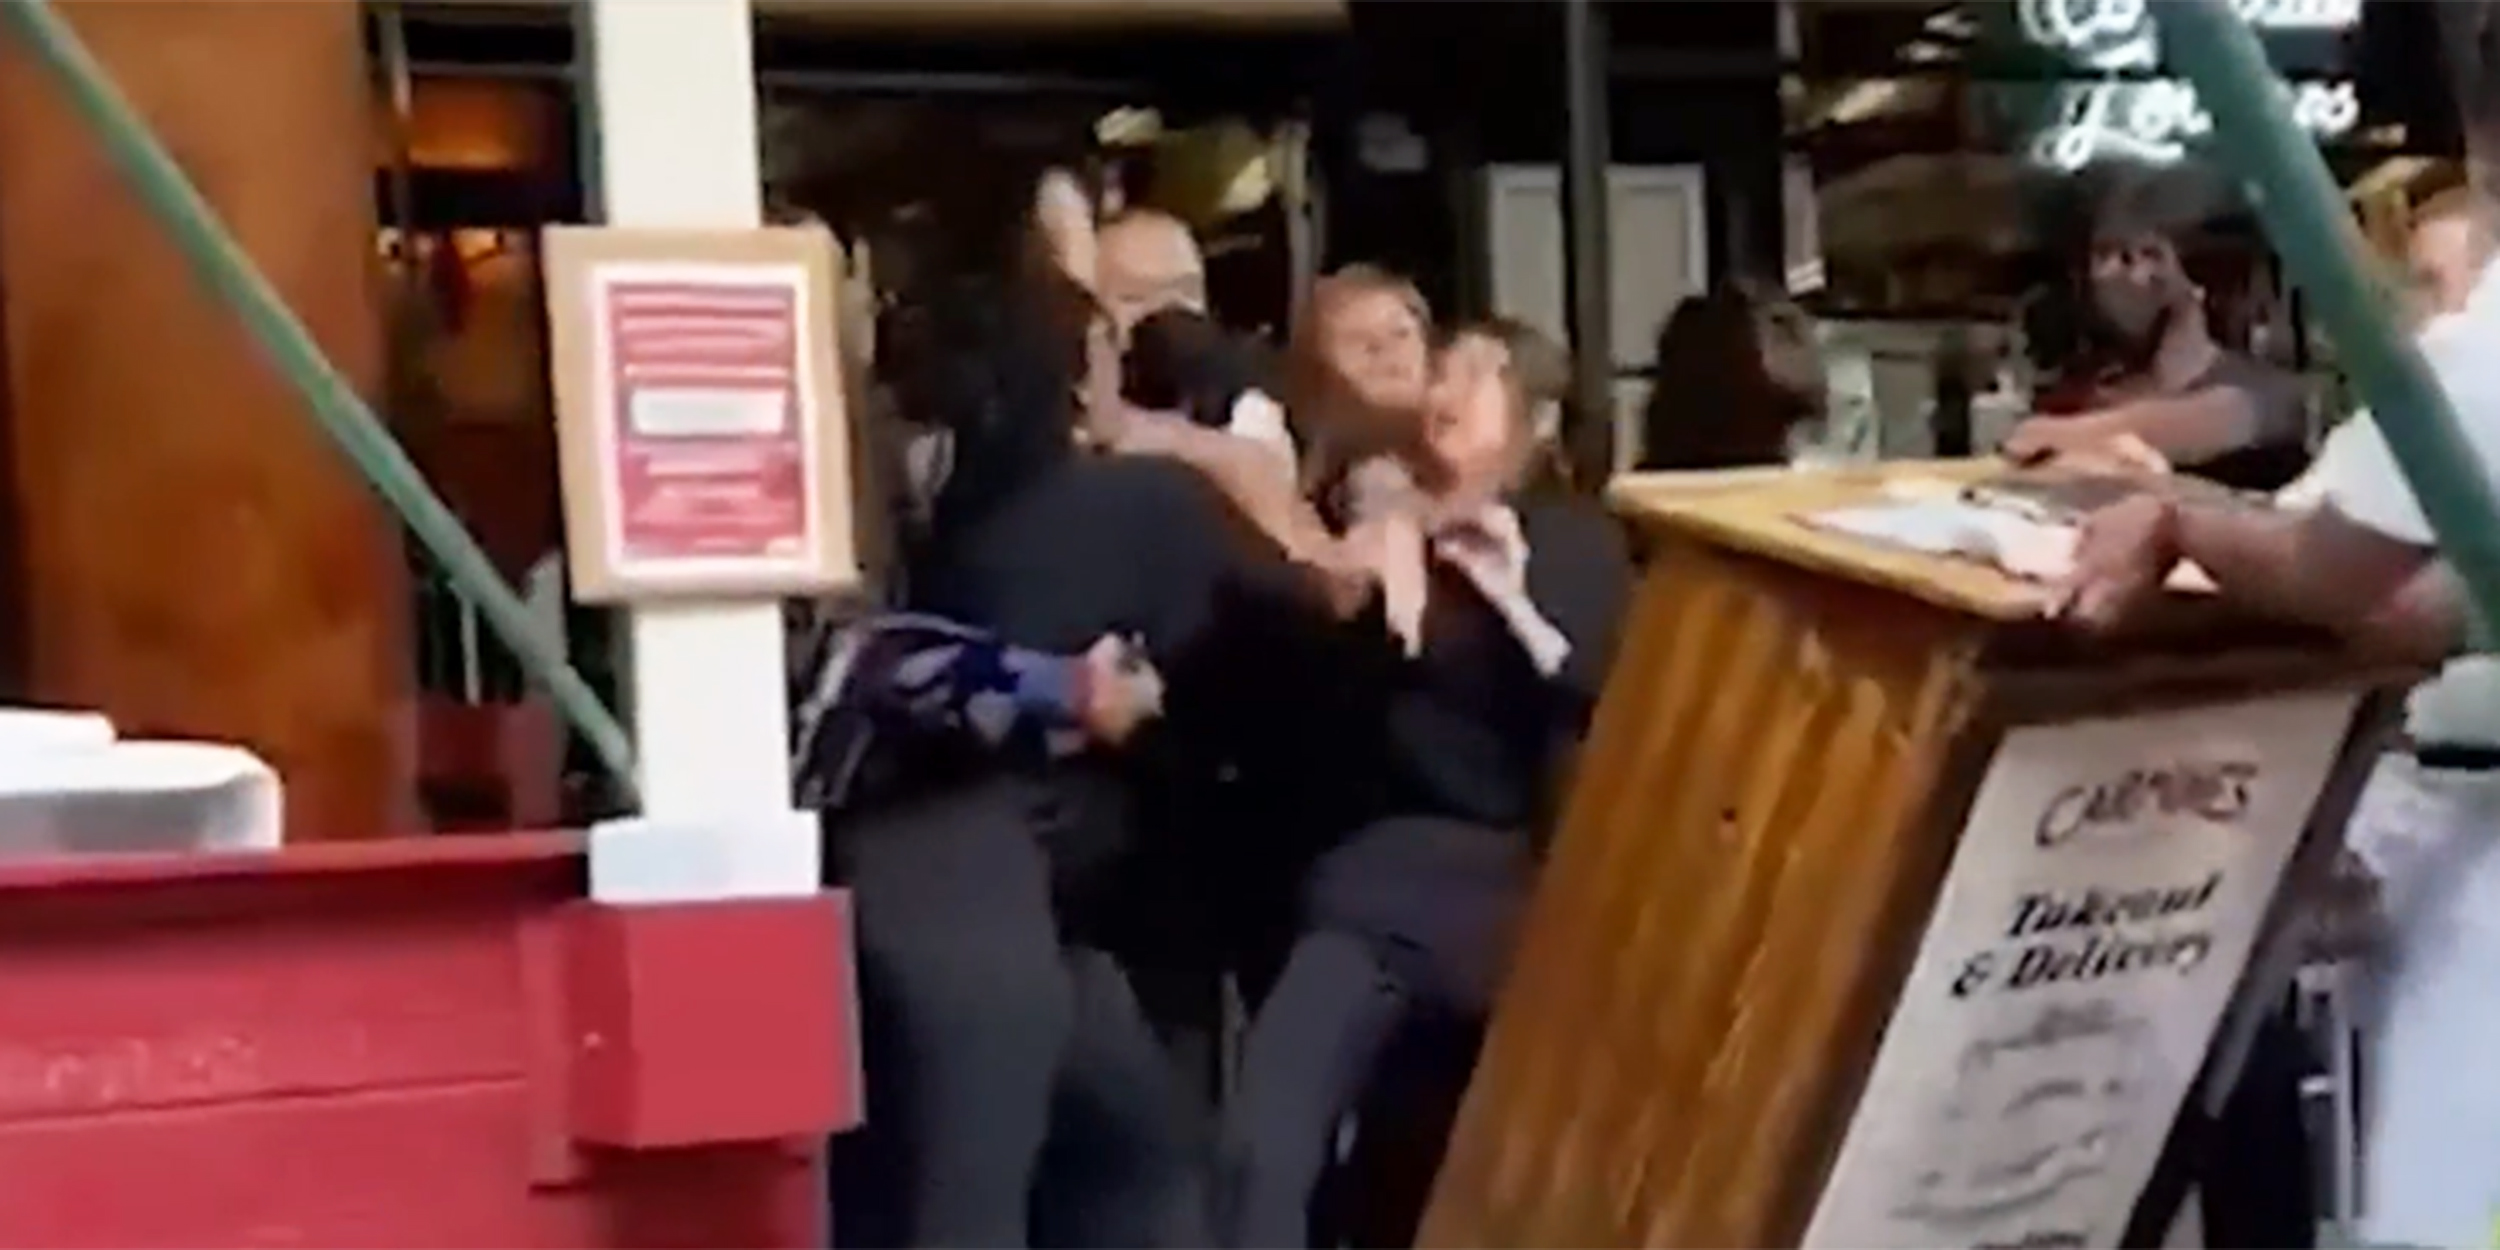 Women who fought hostess at Carmine's in NYC claim slurs used before brawl